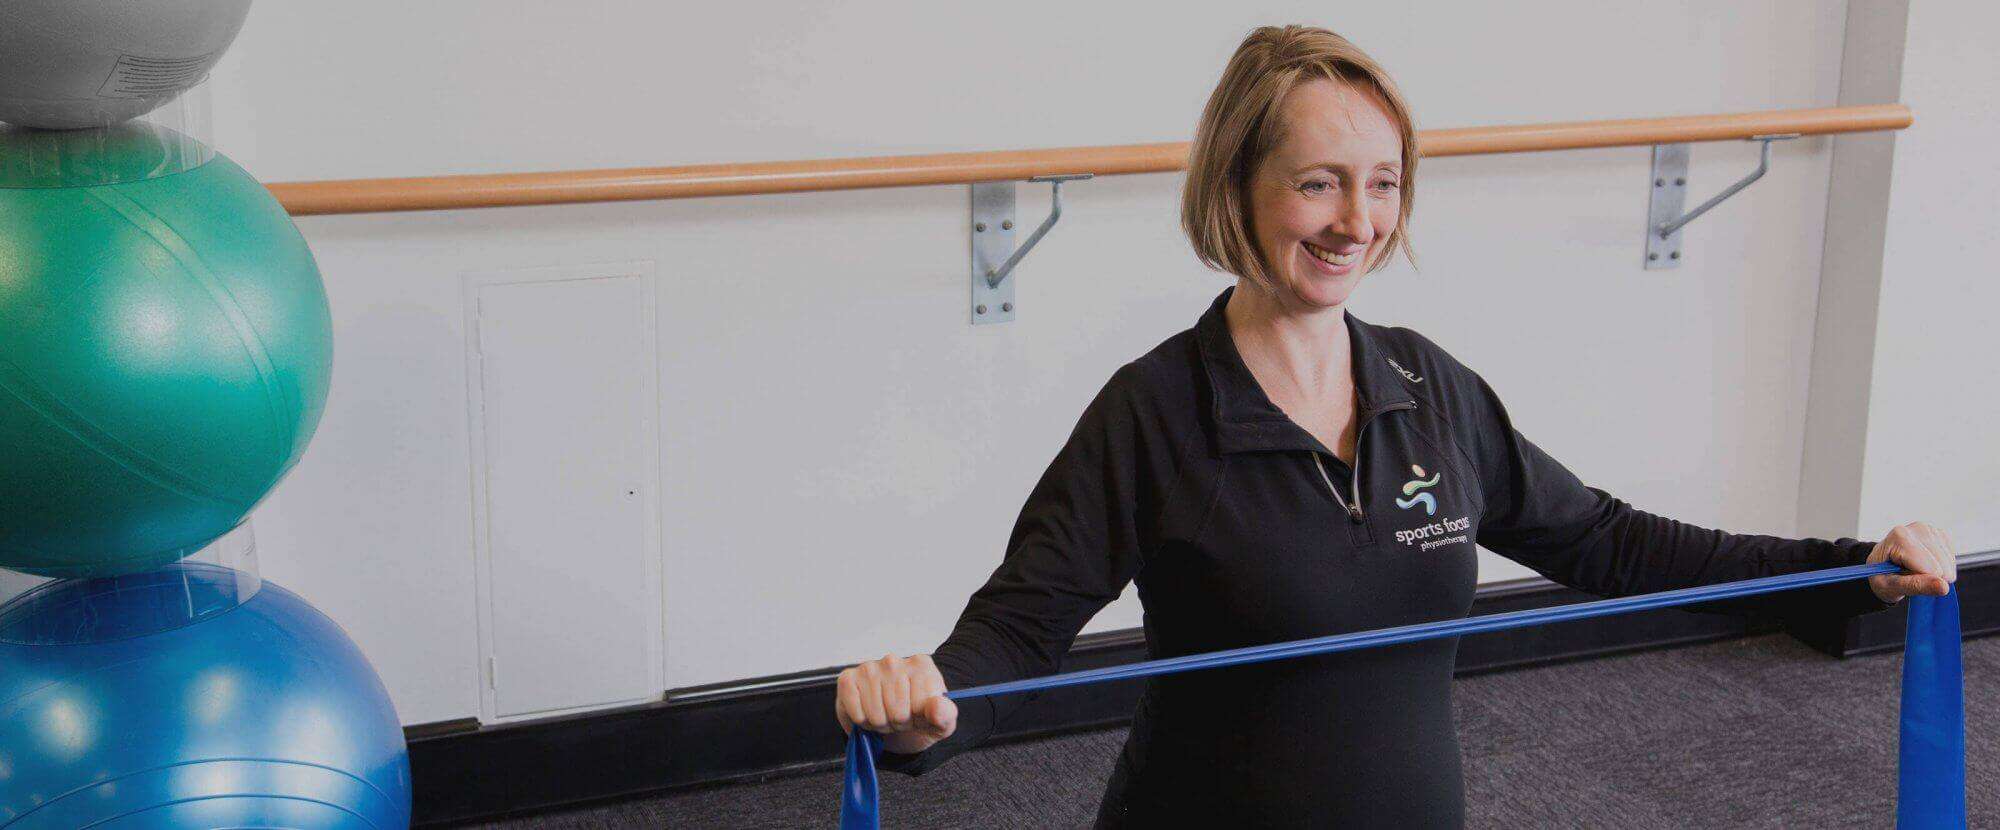 Physio-Sydney-Clinical-Exercise-Programs-Pilates Classes-Sydney-Physio-Pilates